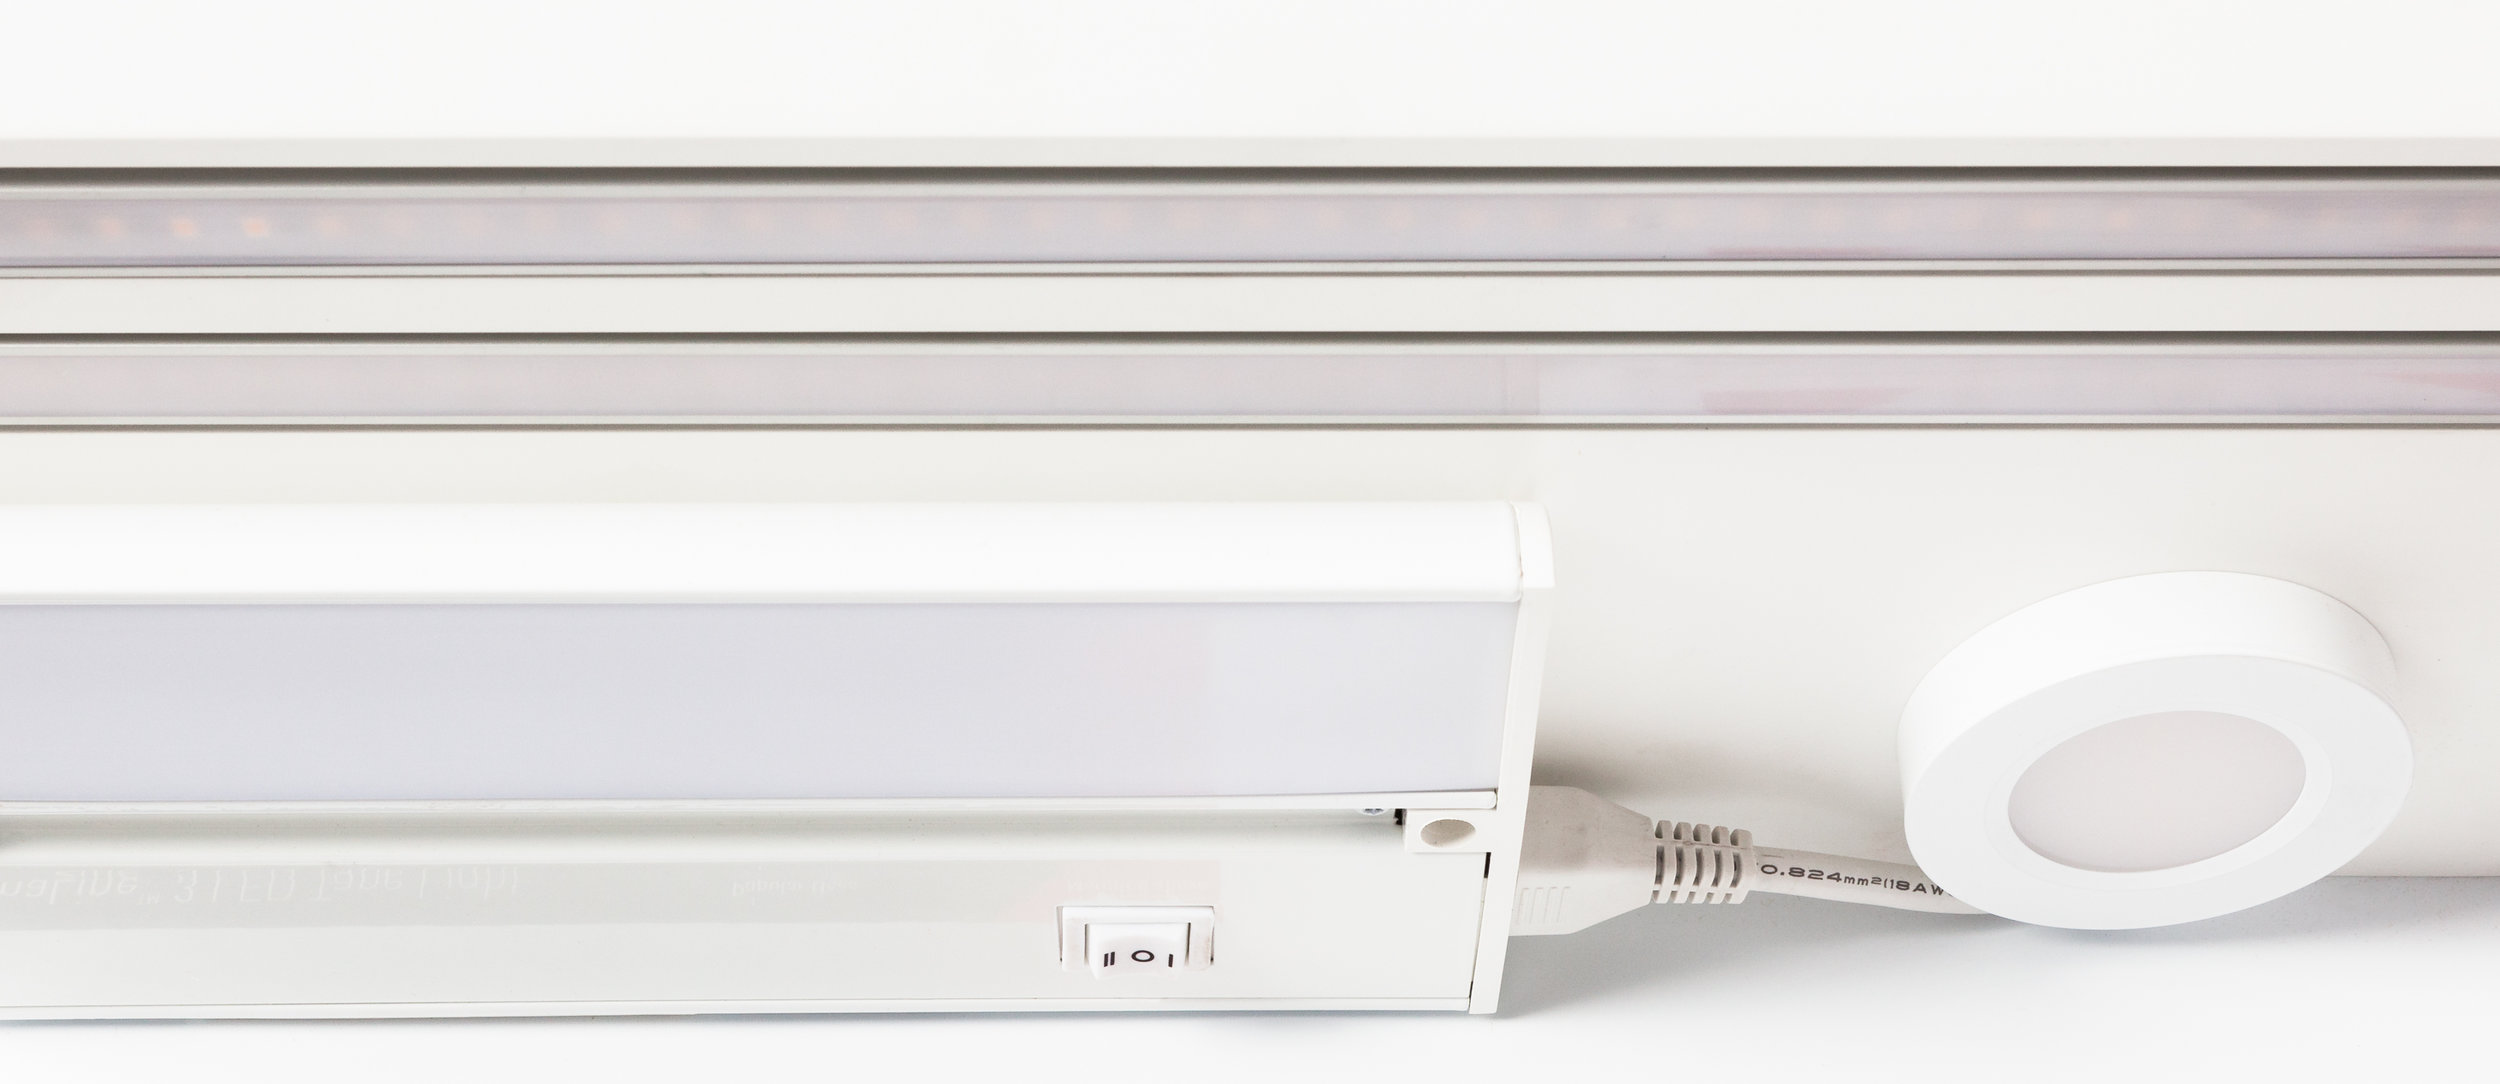 A selection of shelf mounted lights show the quality of the light projected onto a counter surface, at the standard cabinet height.